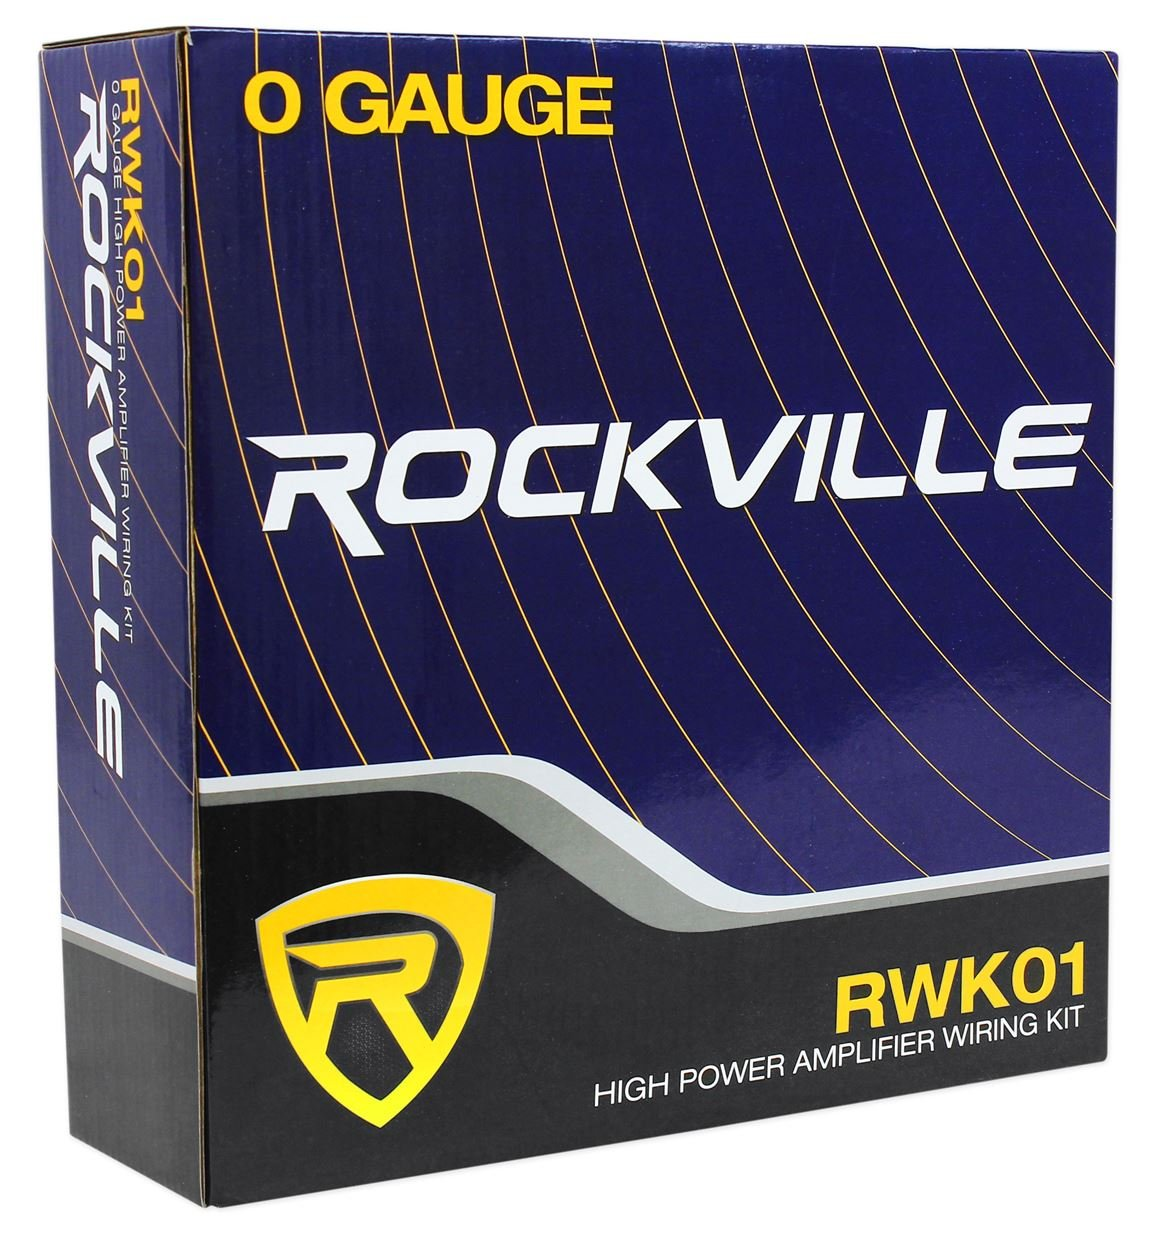 Rockville Rwk01 0 Gauge Complete Car Amp Wiring Audio Amplifiers For Two Installation Wire Kit W Rcas Electronics